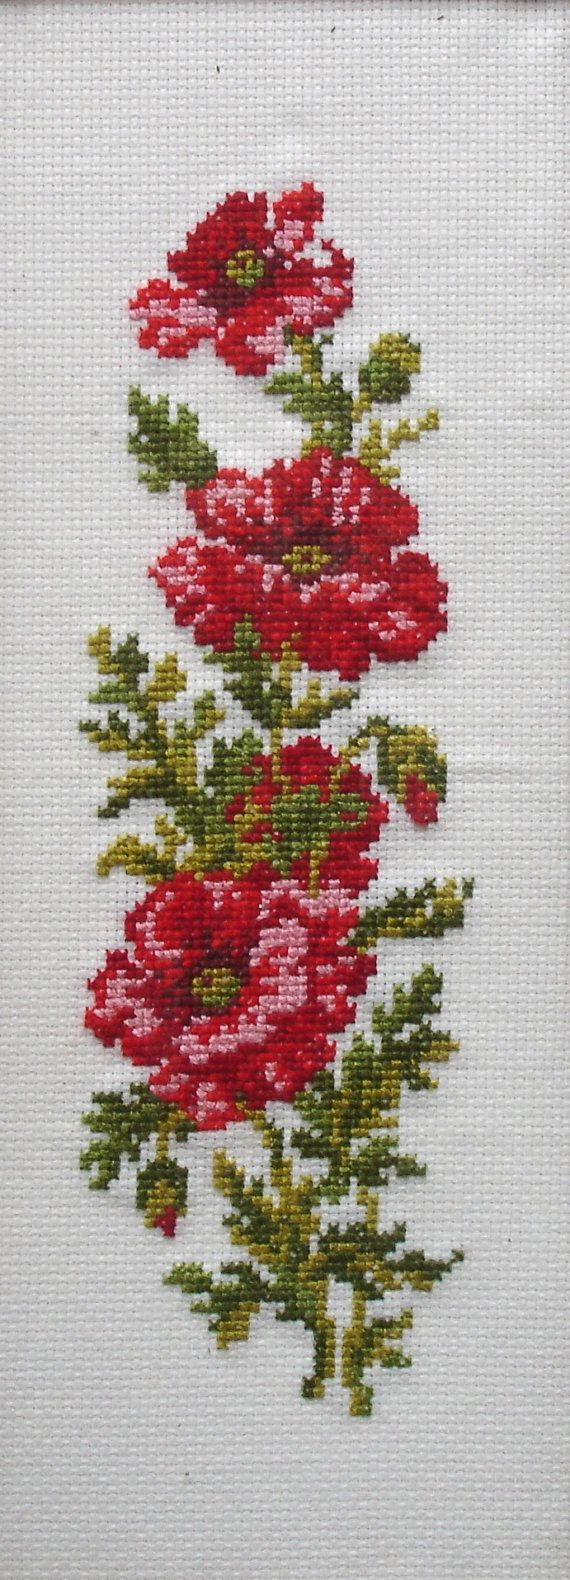 Poppies Counted Cross Stitch / Needlepoint / Sampler / Craft Work / Handmade The picture measures 15 1/4 inches by 7 3/4 inches.    The condition is very good, it is lovely and clean and ready to hang straight on your wall.    It would be a super addition to any collection, excellent display piece or authentic period prop.    Thanks for looking and please cast a glance at my other vintage and historical items at https://www.etsy.com/uk/shop/FillyGumbo?section_id=all